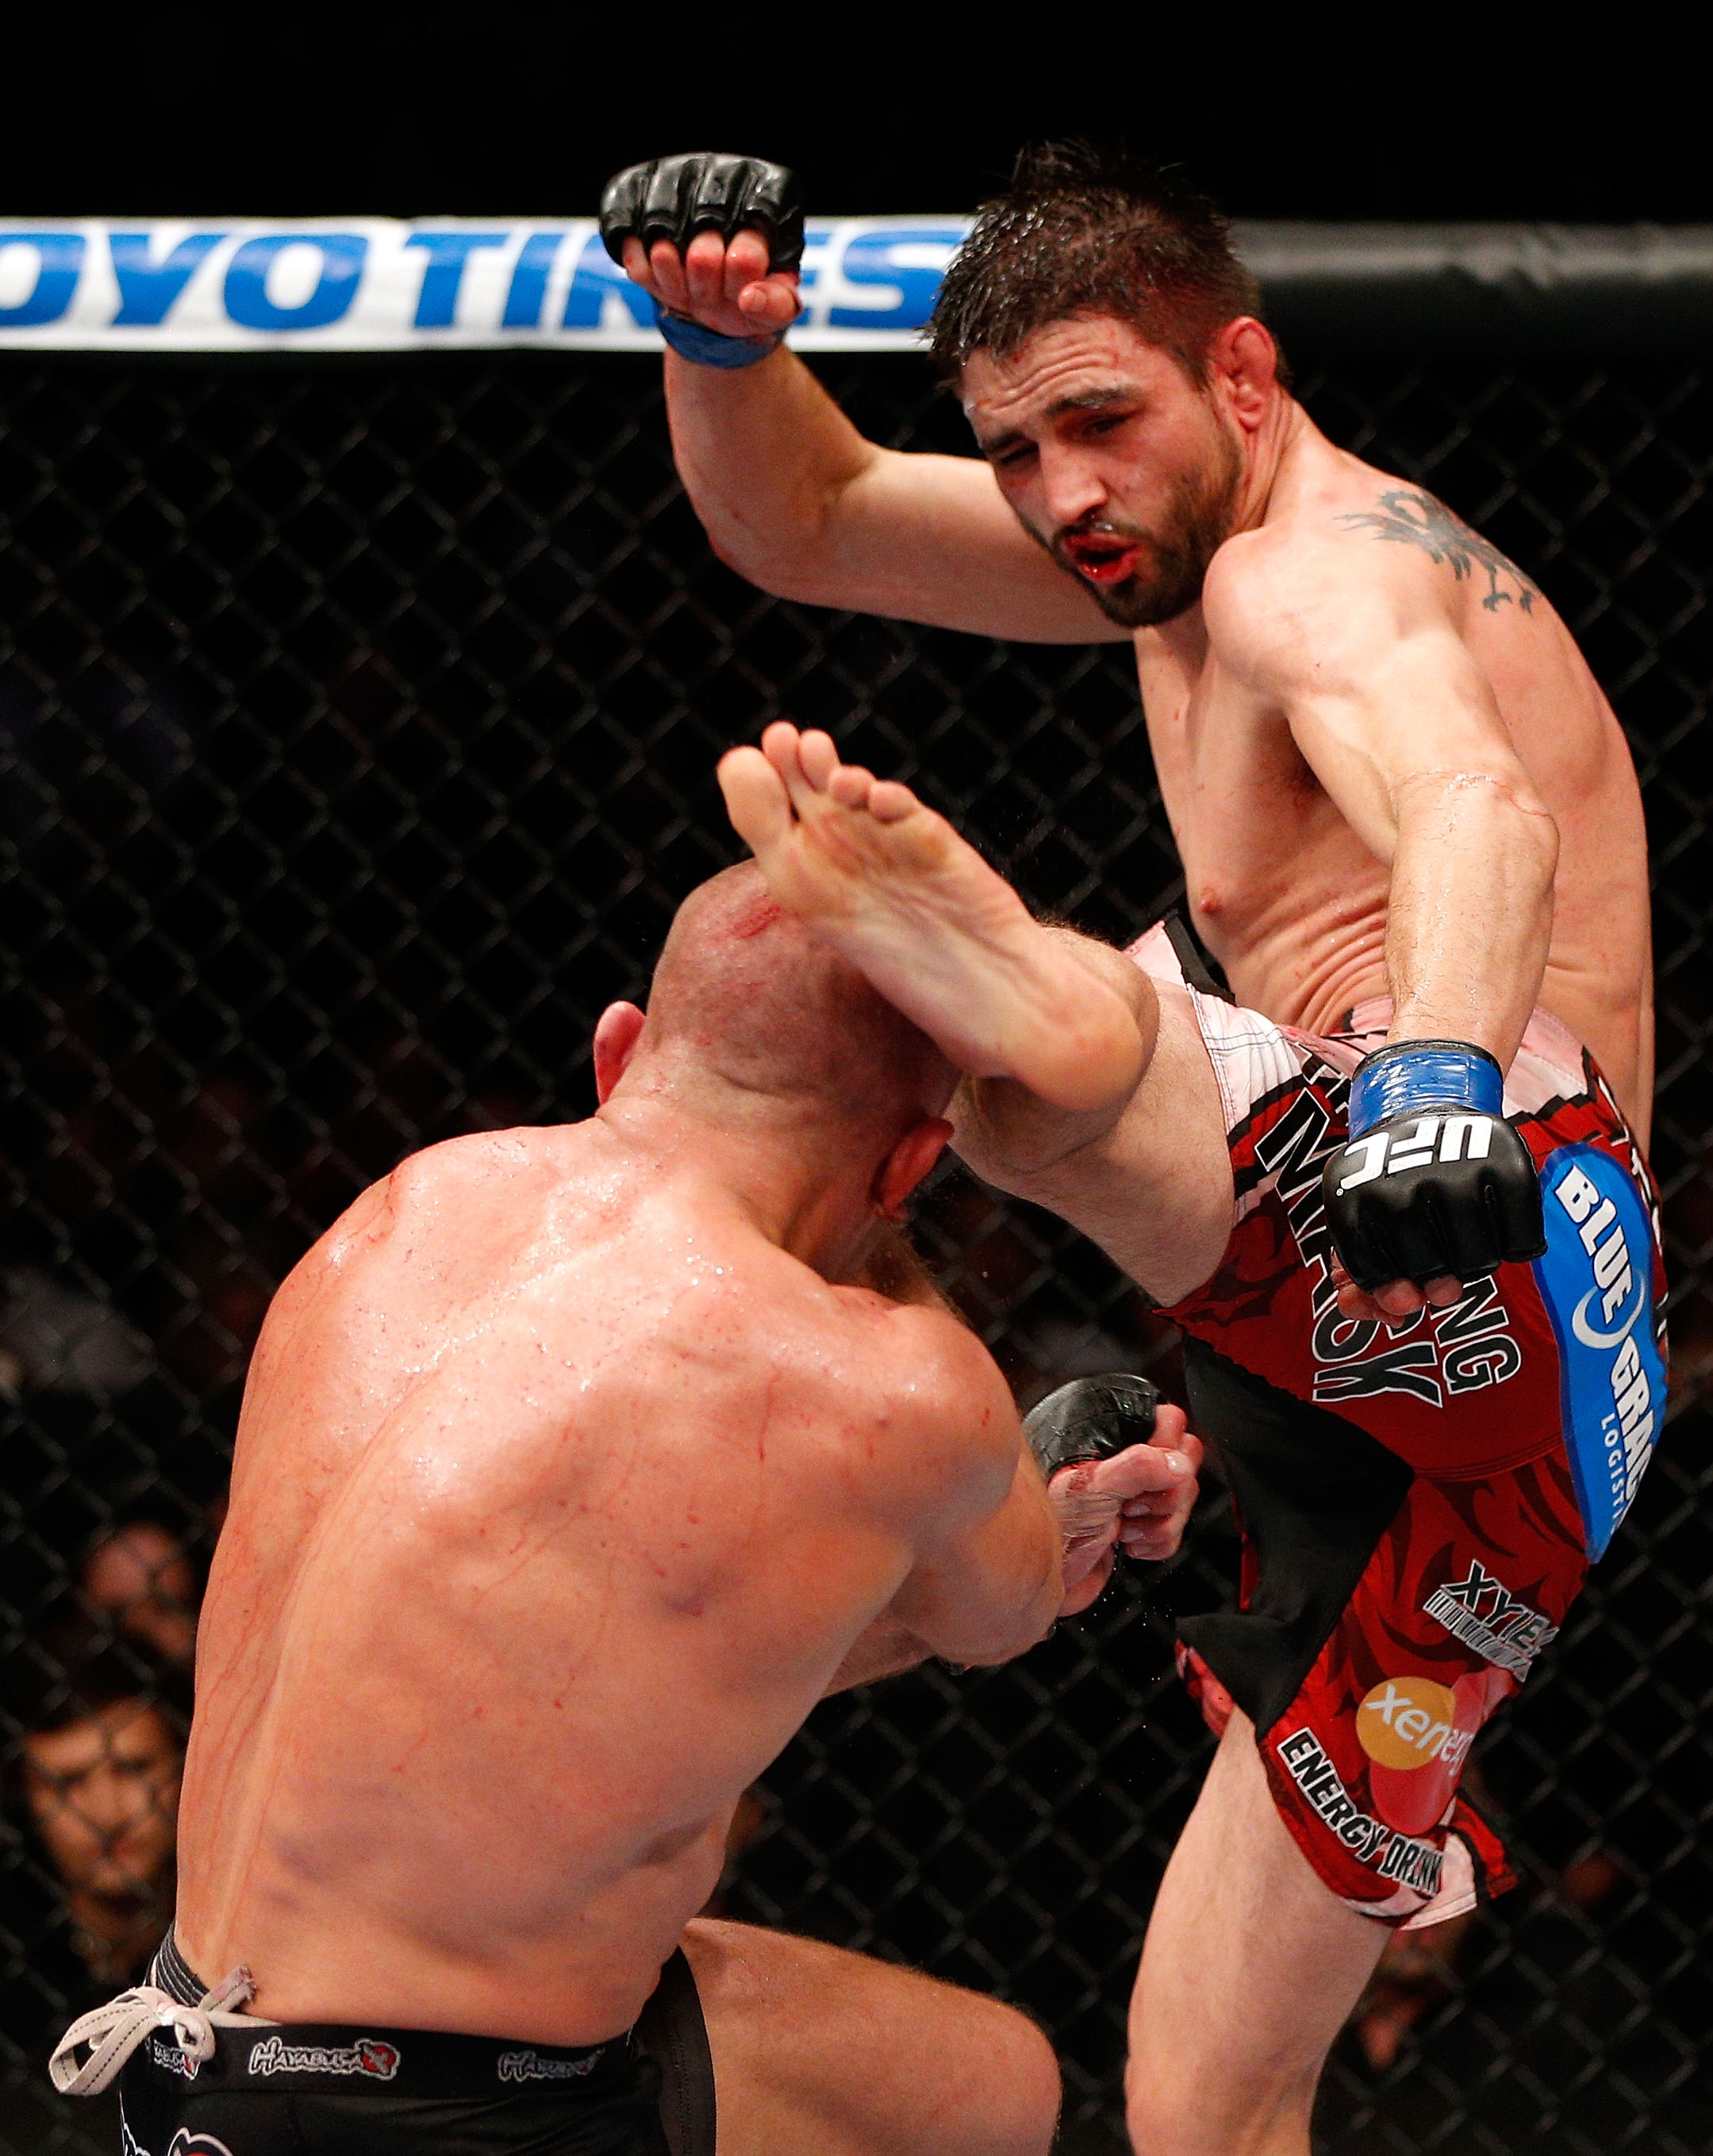 Georges St-Pierre's 'proudest' moment was overcoming Carlos Condit's headkick in 2012